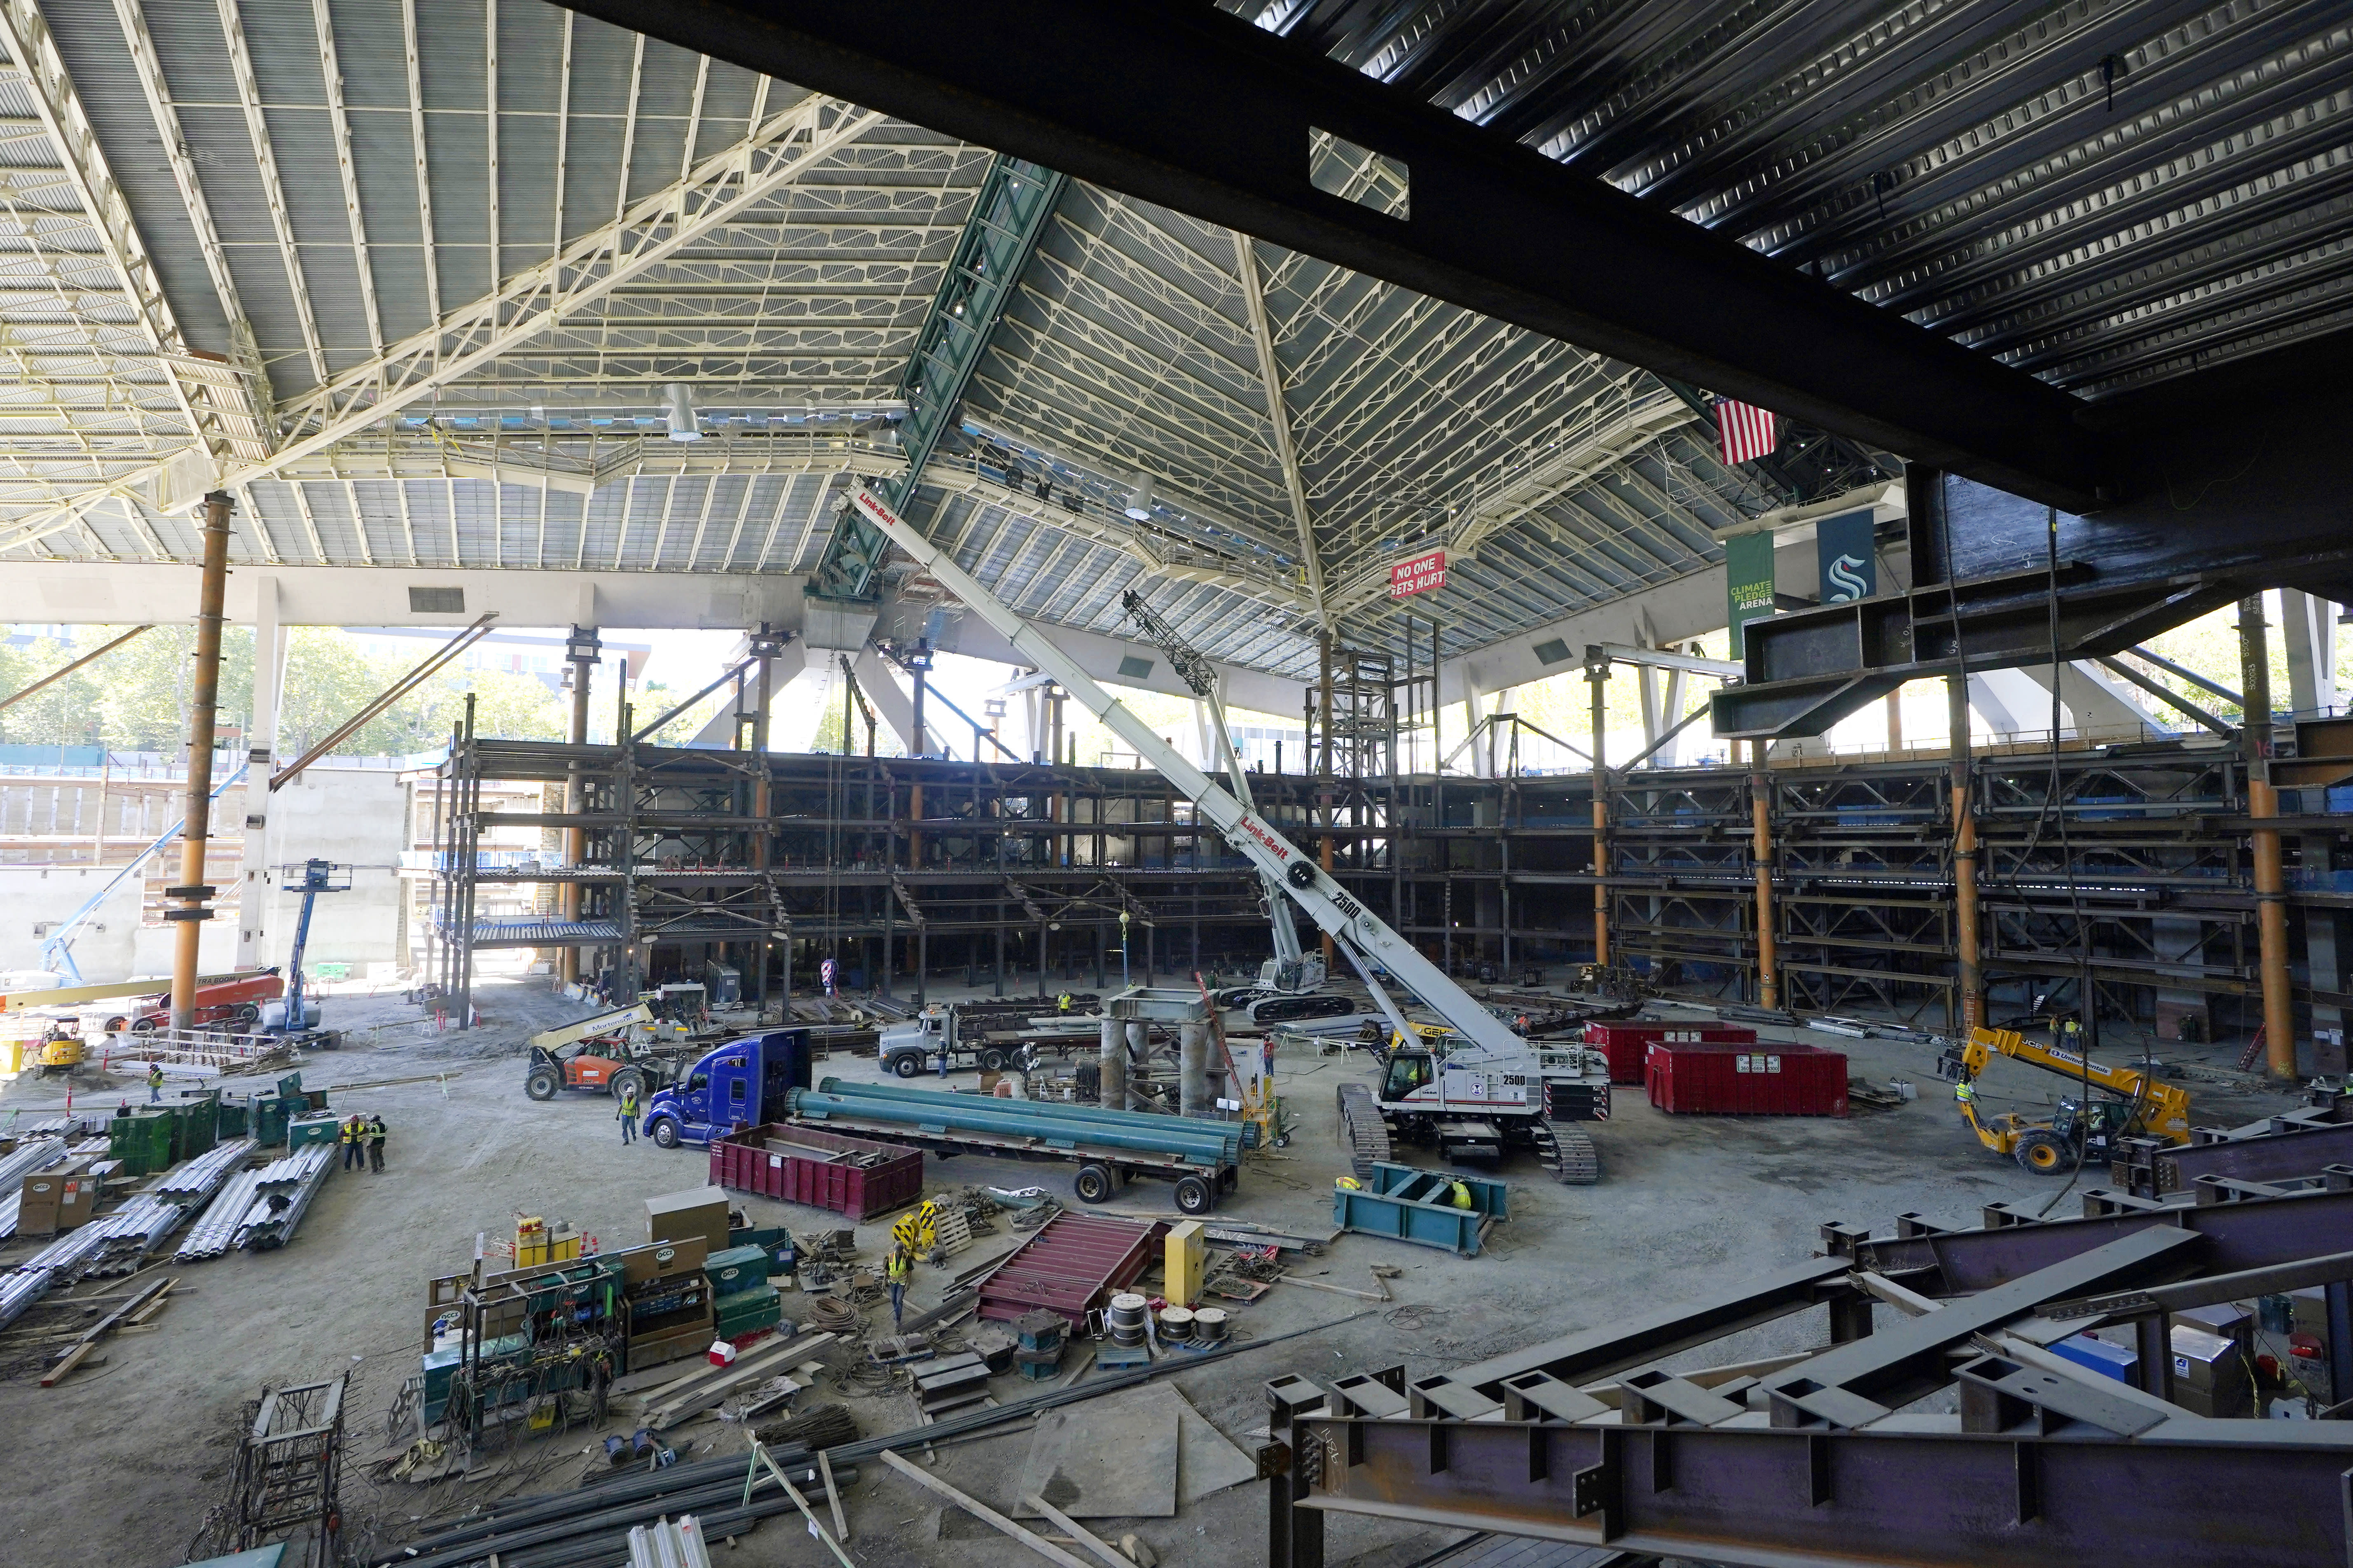 The historic roof of the former KeyArena and a tiered seating area tower over trucks and a crane working Tuesday, Sept. 1, 2020, at what will be center-ice of the Climate Pledge Arena in Seattle, as viewed from the club level of the home of the Seattle Kraken NHL hockey team. Sometime in the late summer or early fall of 2021, the Kraken will open the new facility -- at a cost that will likely total $1 billion by the time it's done -- and become the NHL's 32nd franchise. (AP Photo/Ted S. Warren)